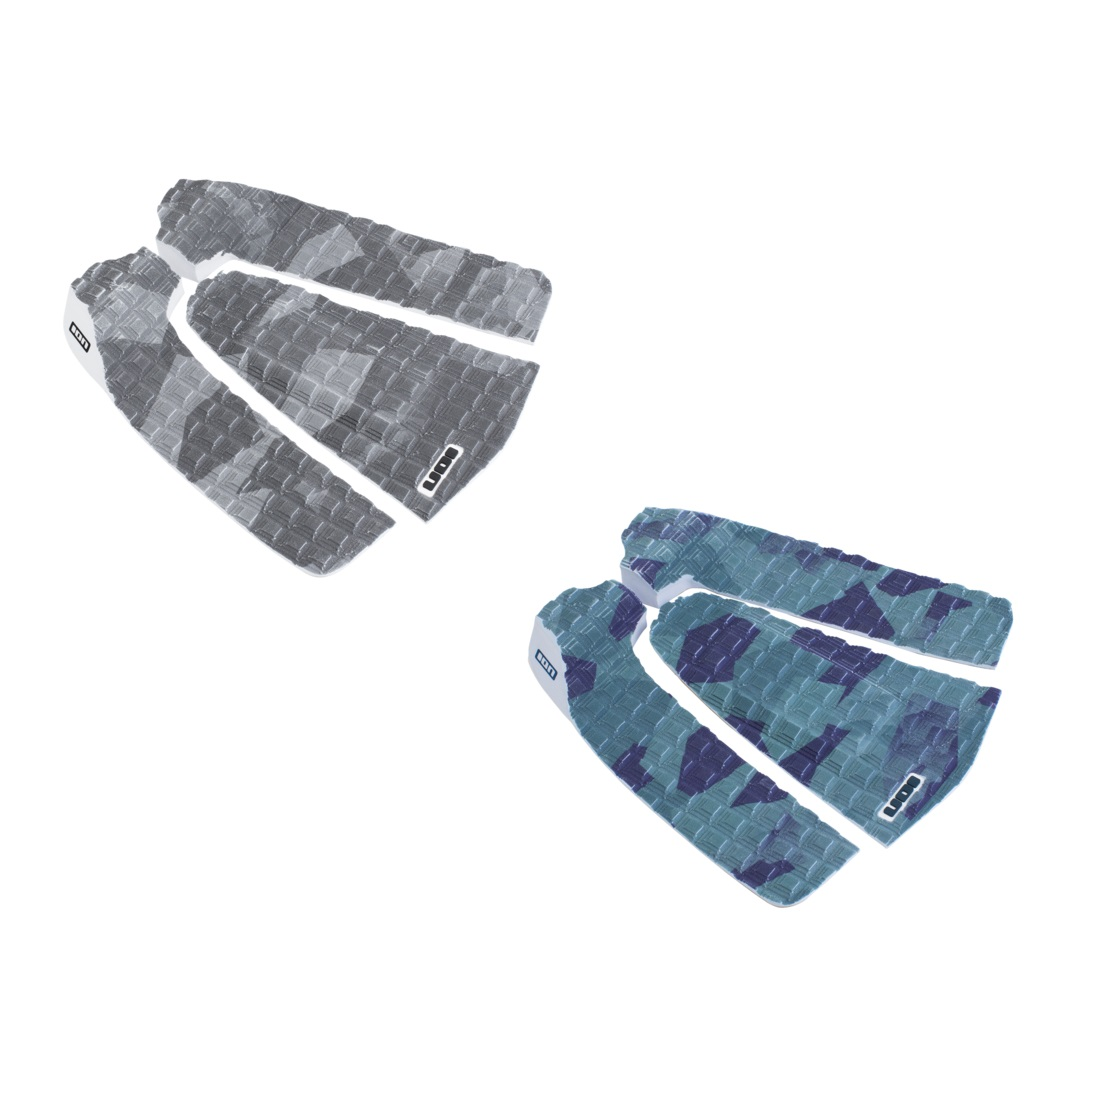 Surfboard Pads Camouflage 3 pcs